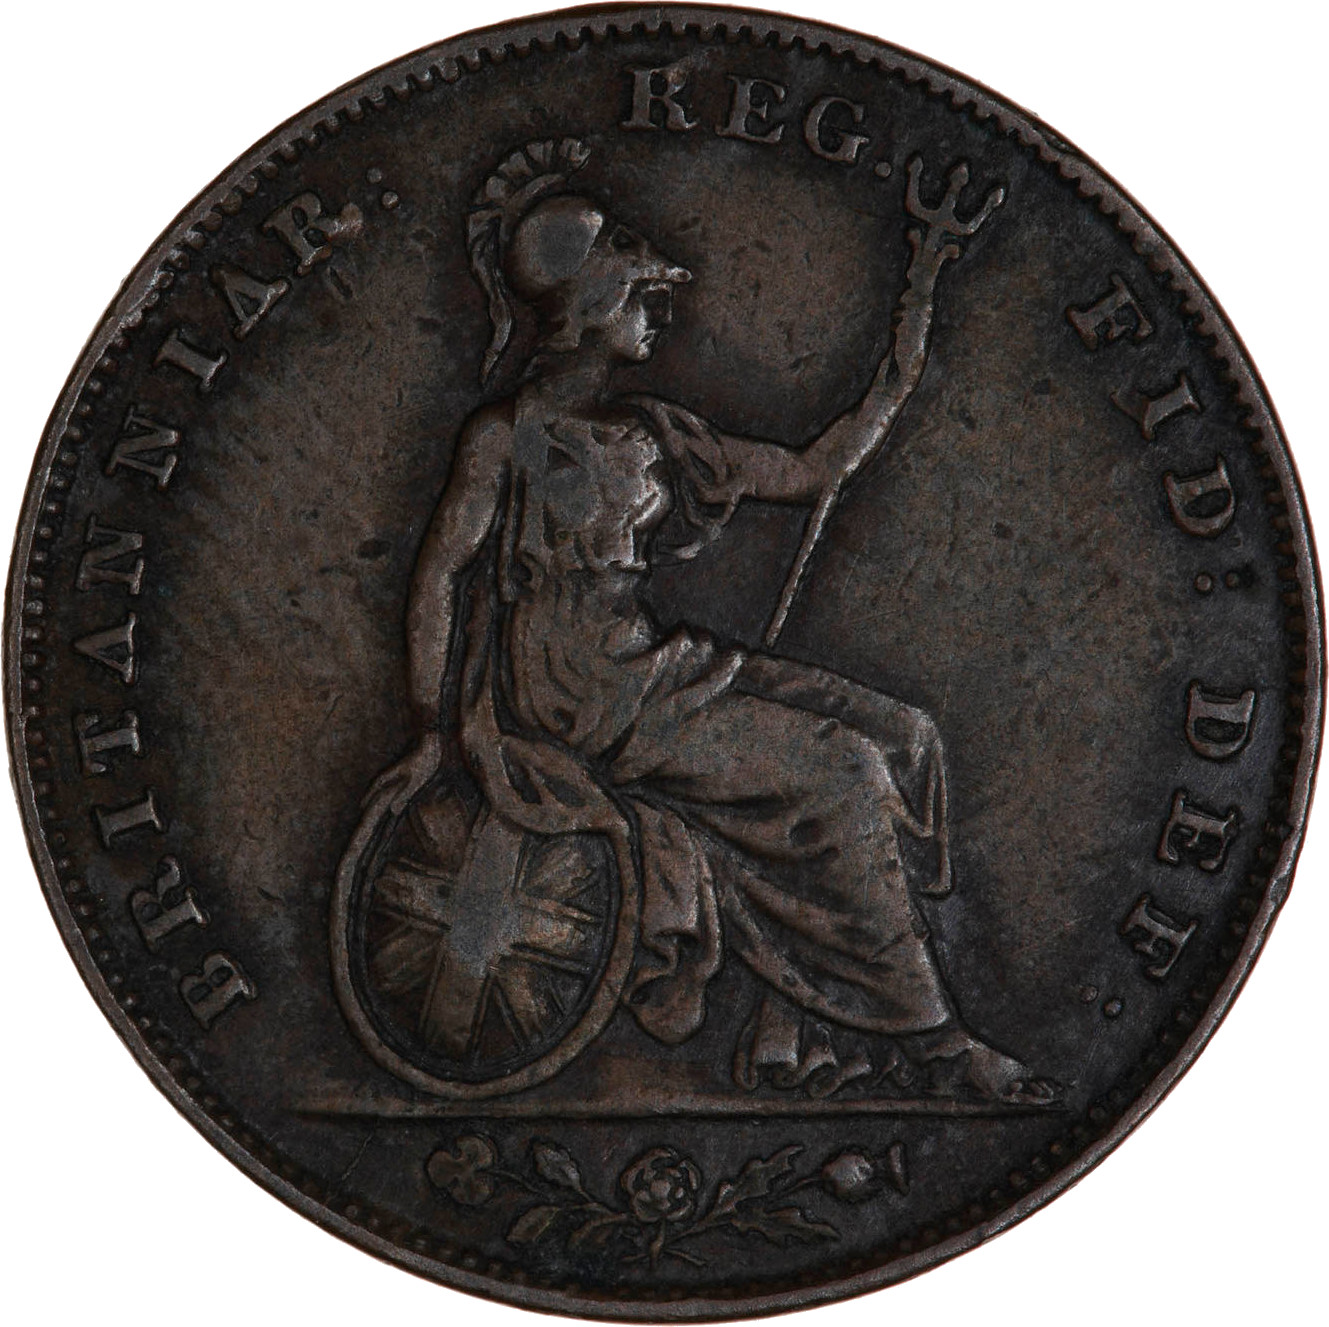 Maundy Twopence (Sterling silver): Photo Coin - Twopence (Maundy), Elizabeth II, Great Britain, 1957